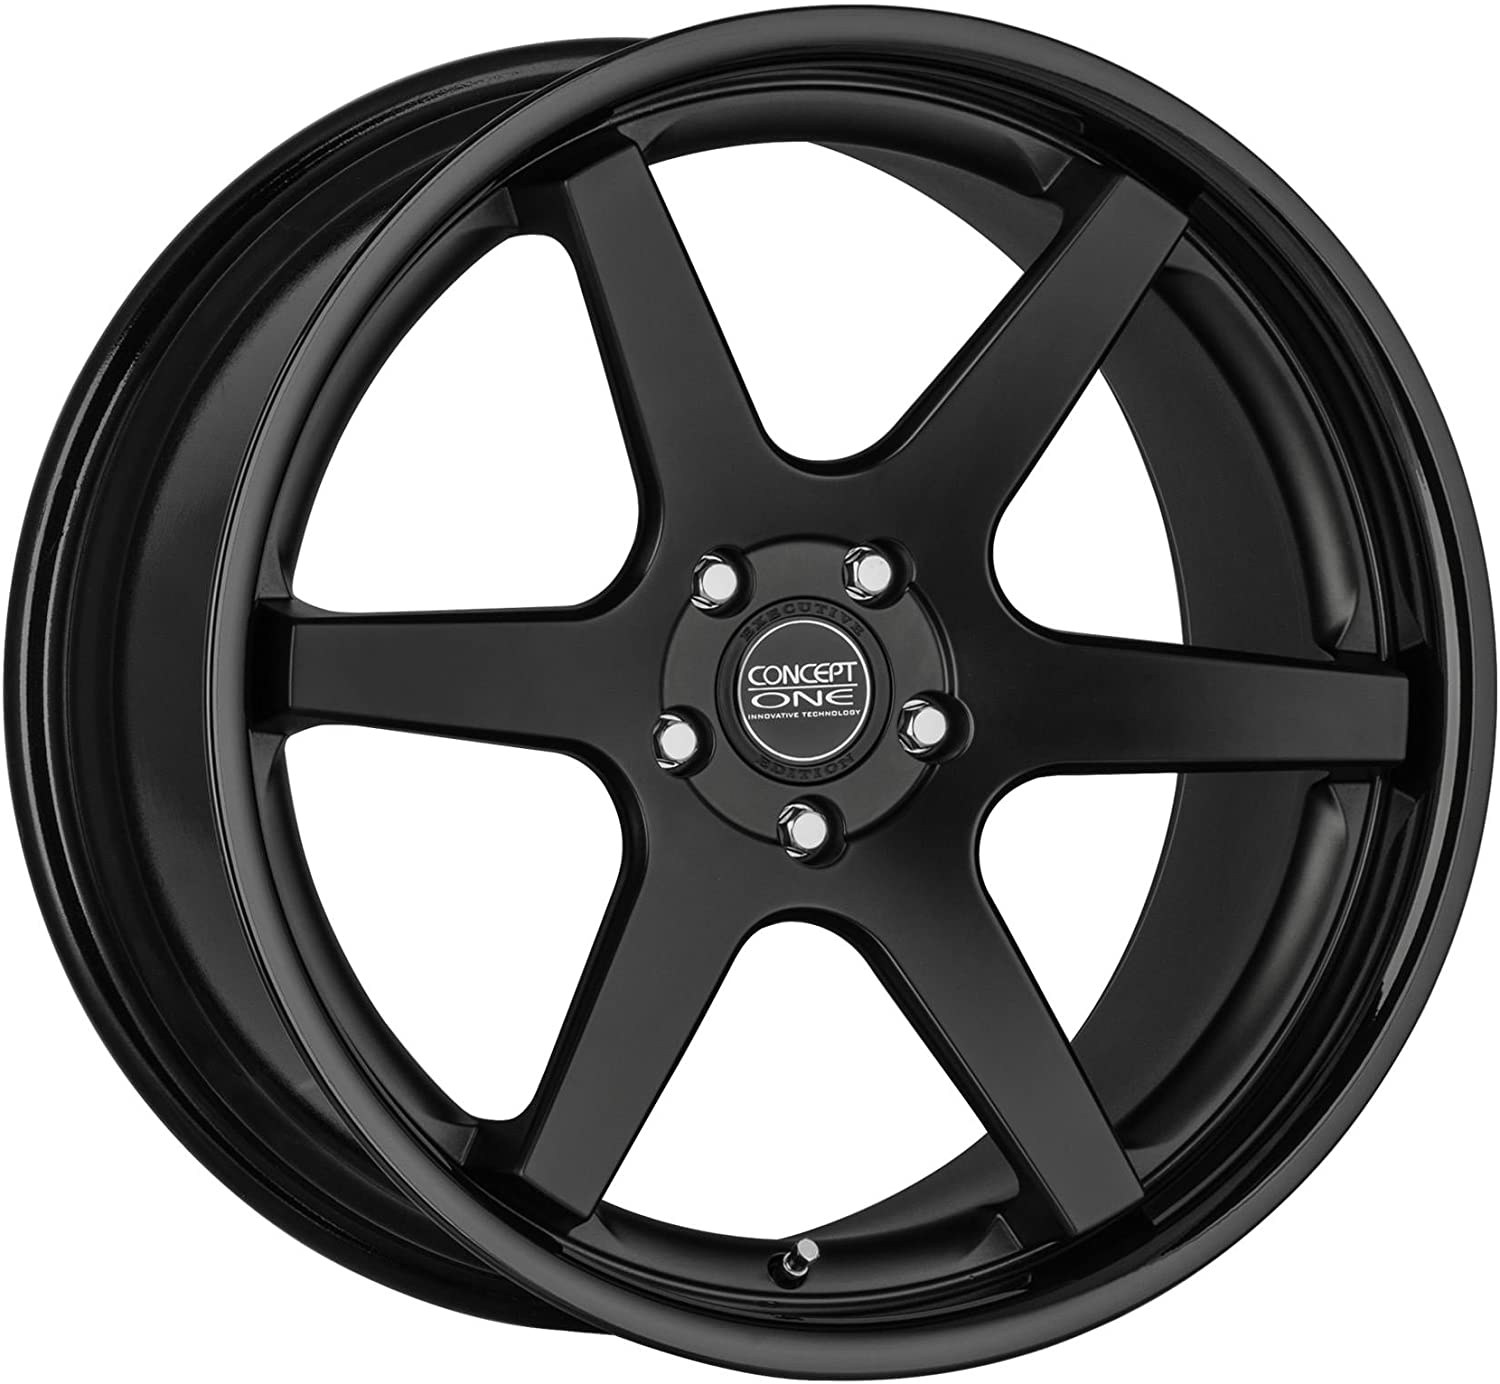 Concept One CS 6.0 Matte Black/Gloss Black Lip Wheel with Painted Finish (20 x 9. inches /5 x 114 mm, 36 mm Offset)